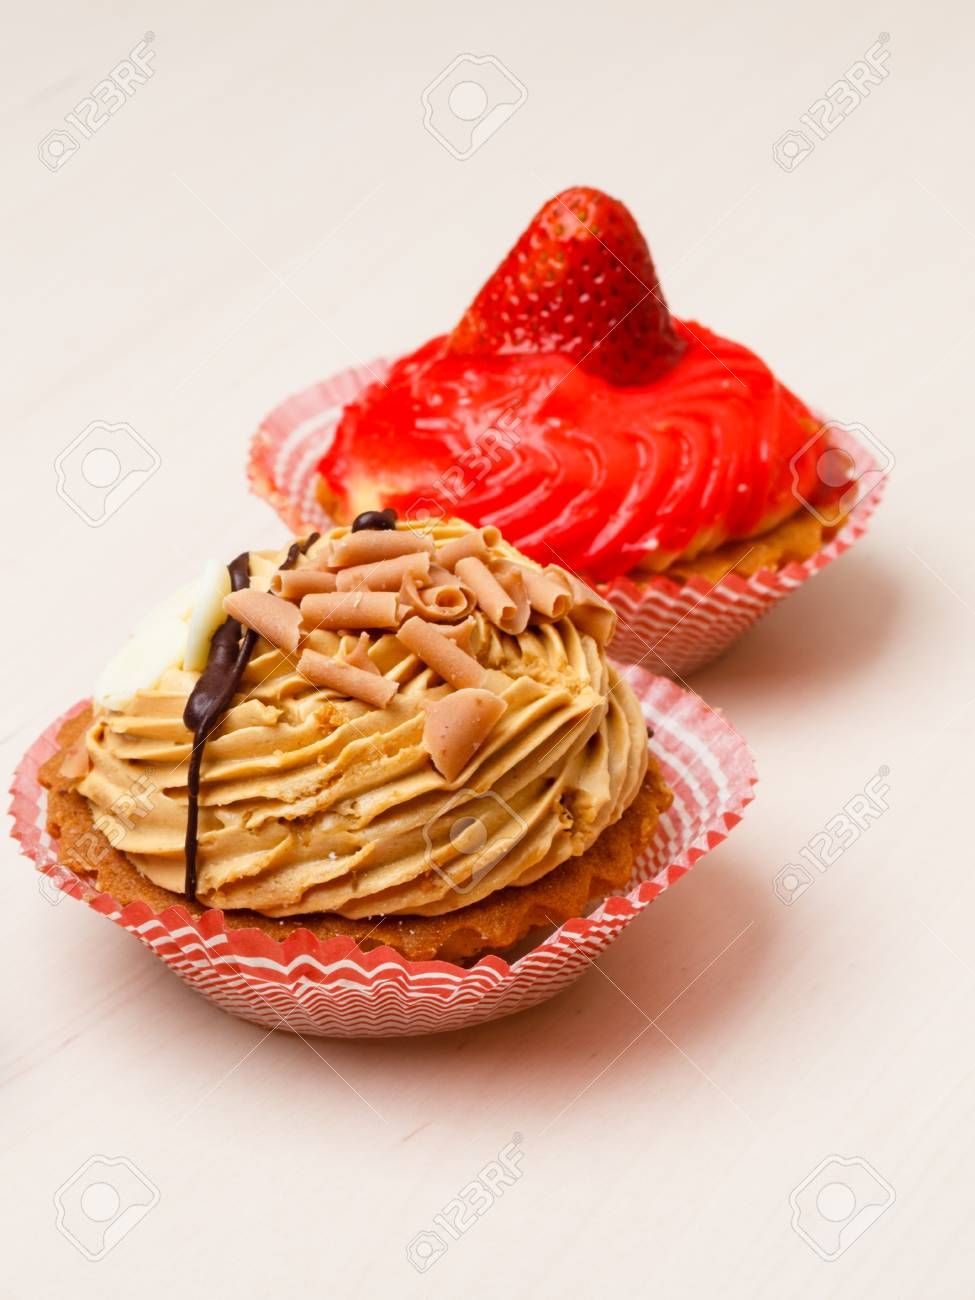 Gourmet Tasty Cakes Cupcakes With Cream And Fruit Decoration As